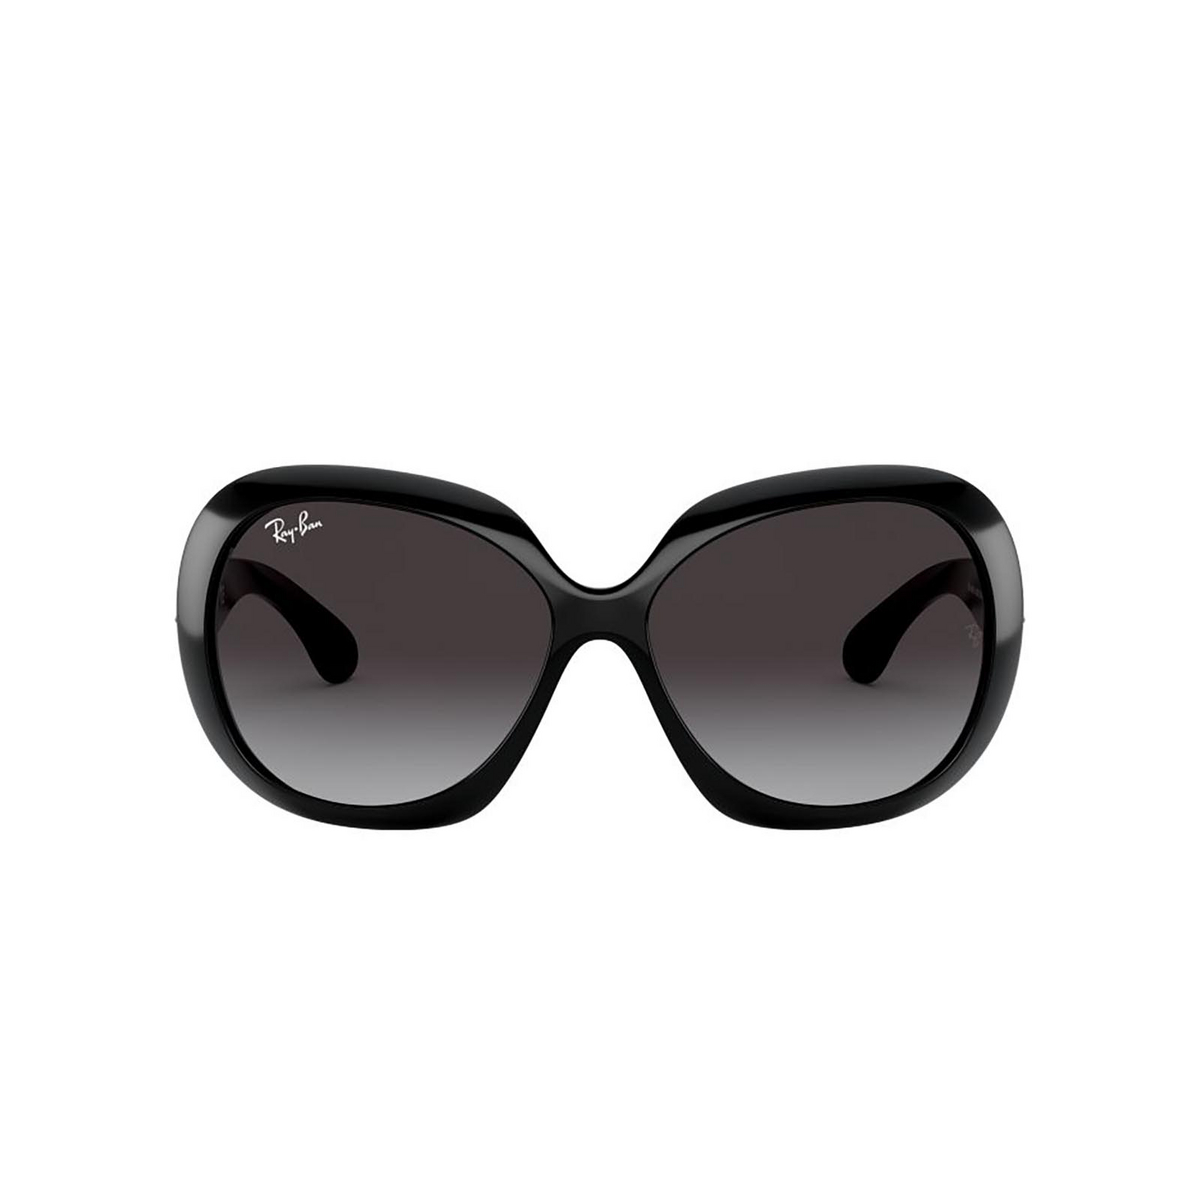 Ray-Ban® Butterfly Sunglasses: Jackie Ohh Ii RB4098 color Black 601/8G - 1/3.